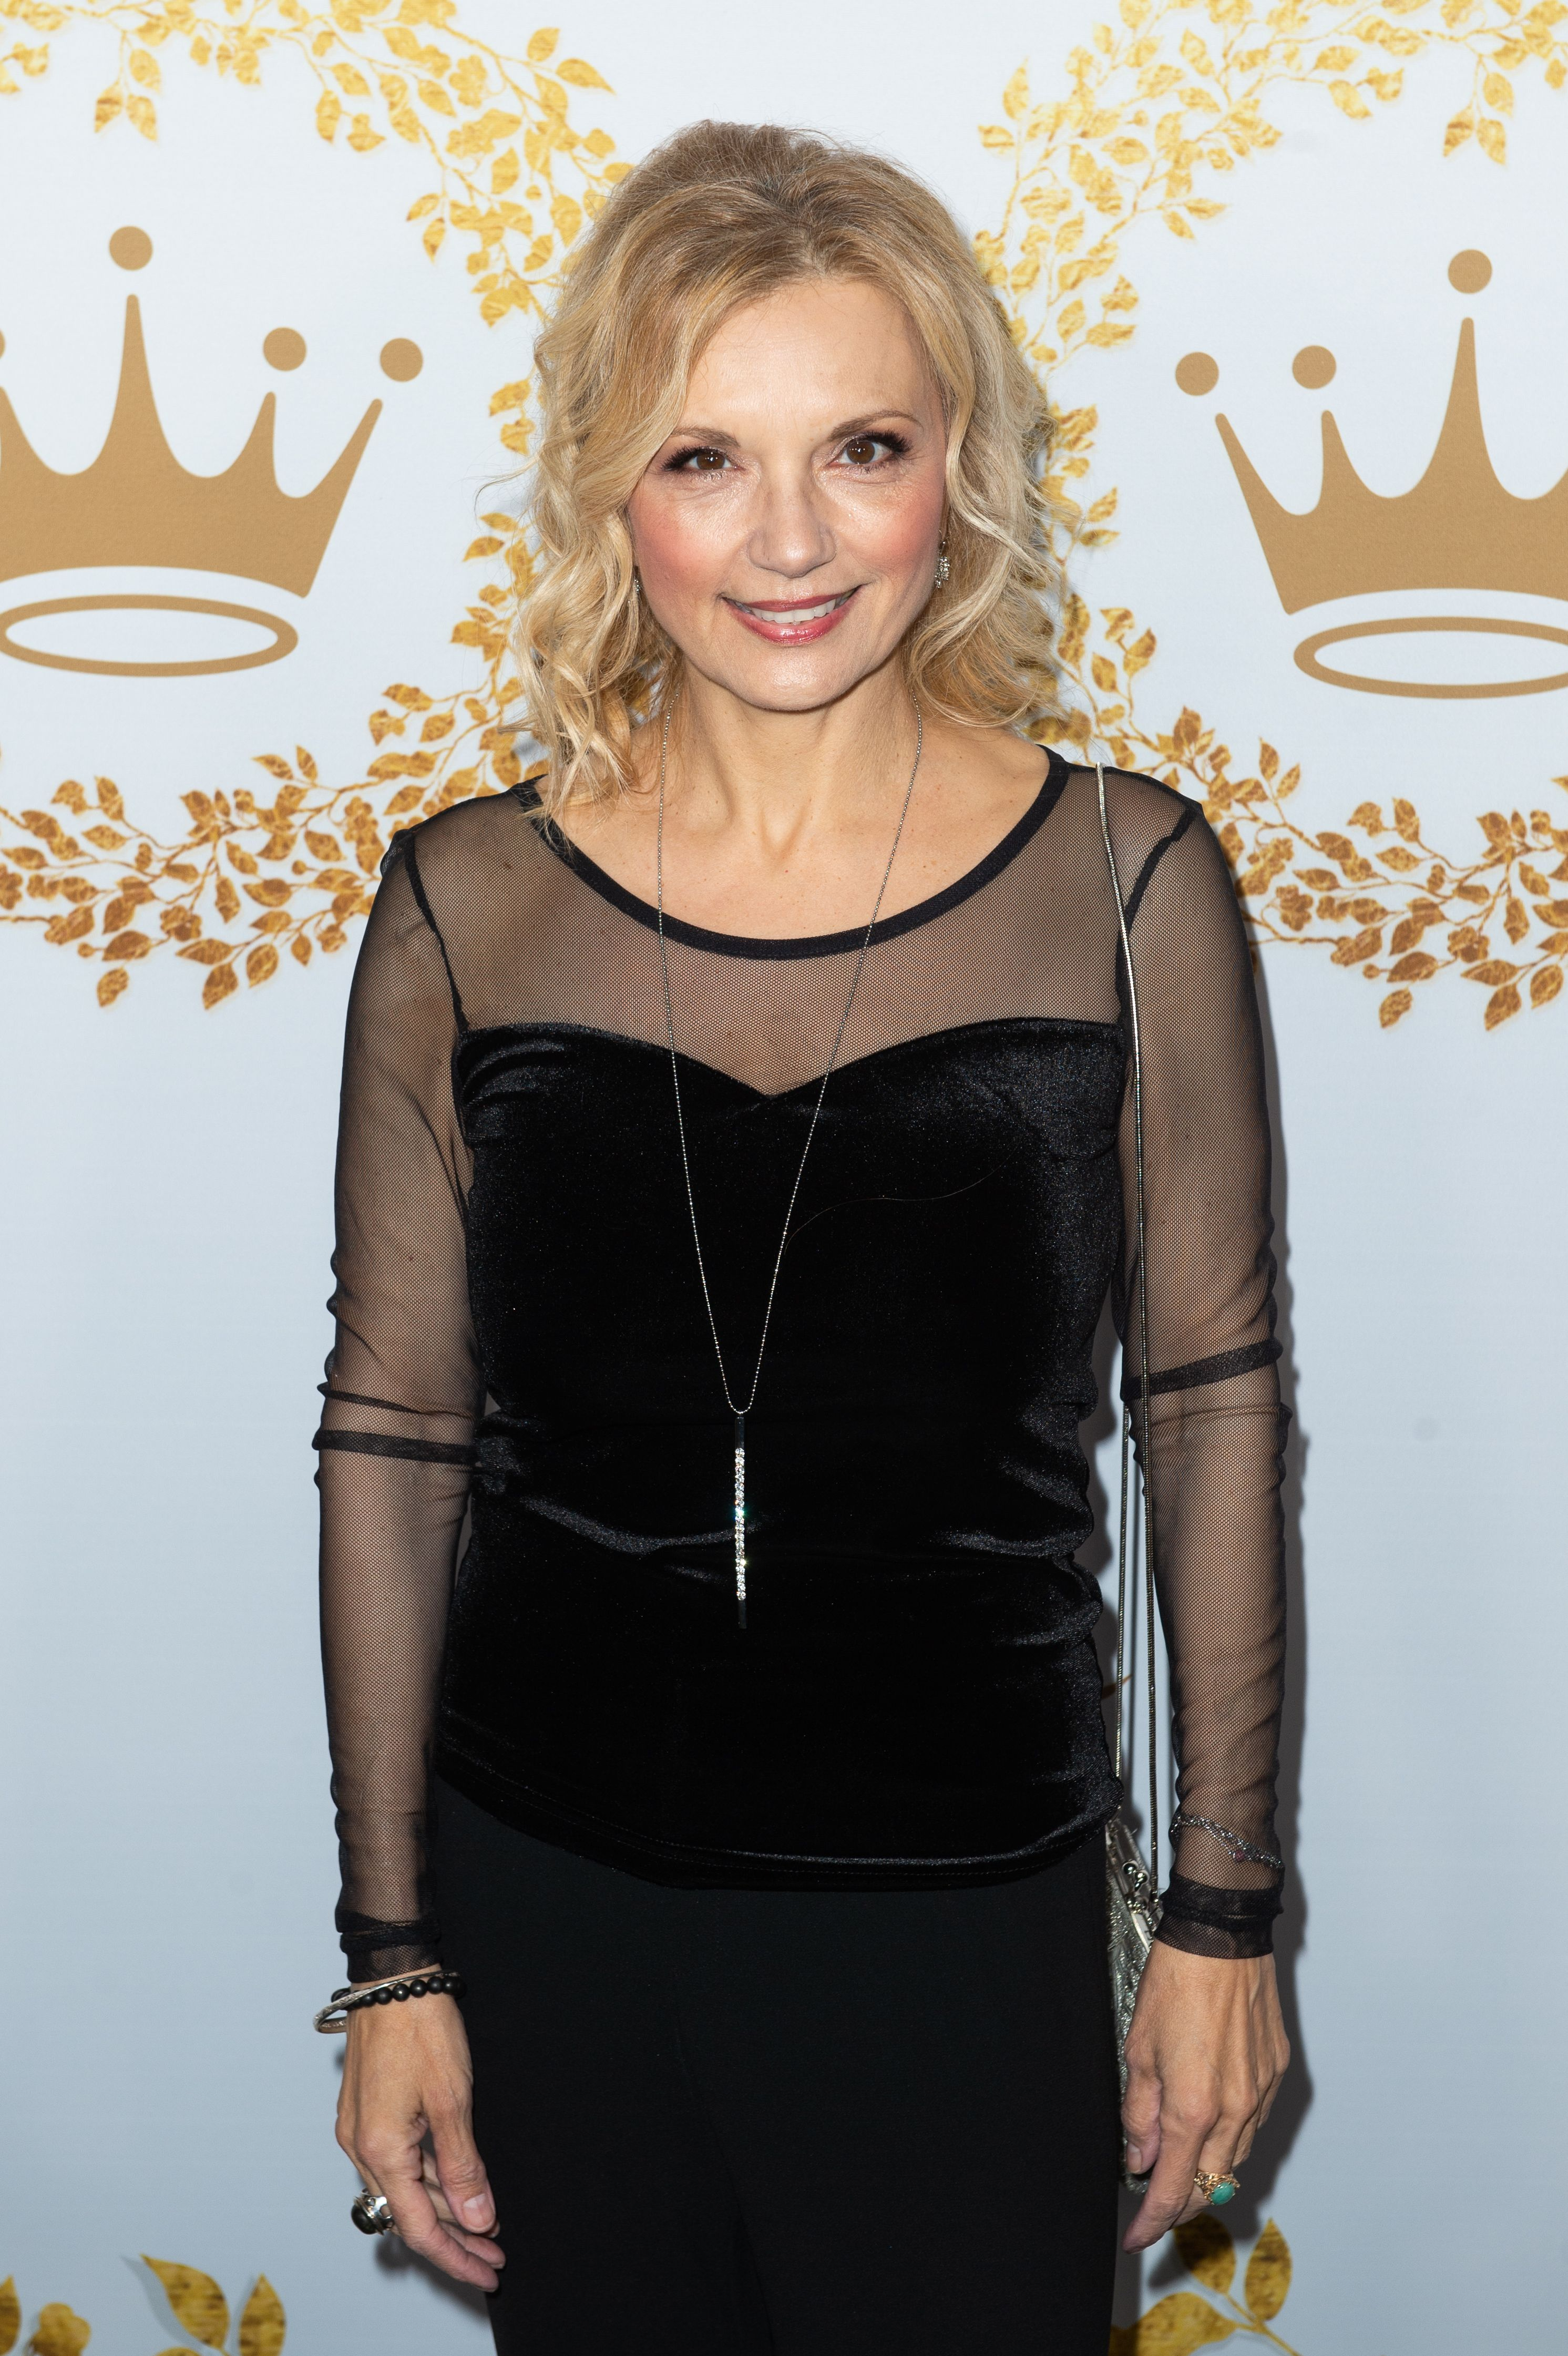 We Ll Share More News About Teryl Rothery And Chesapeake Shores